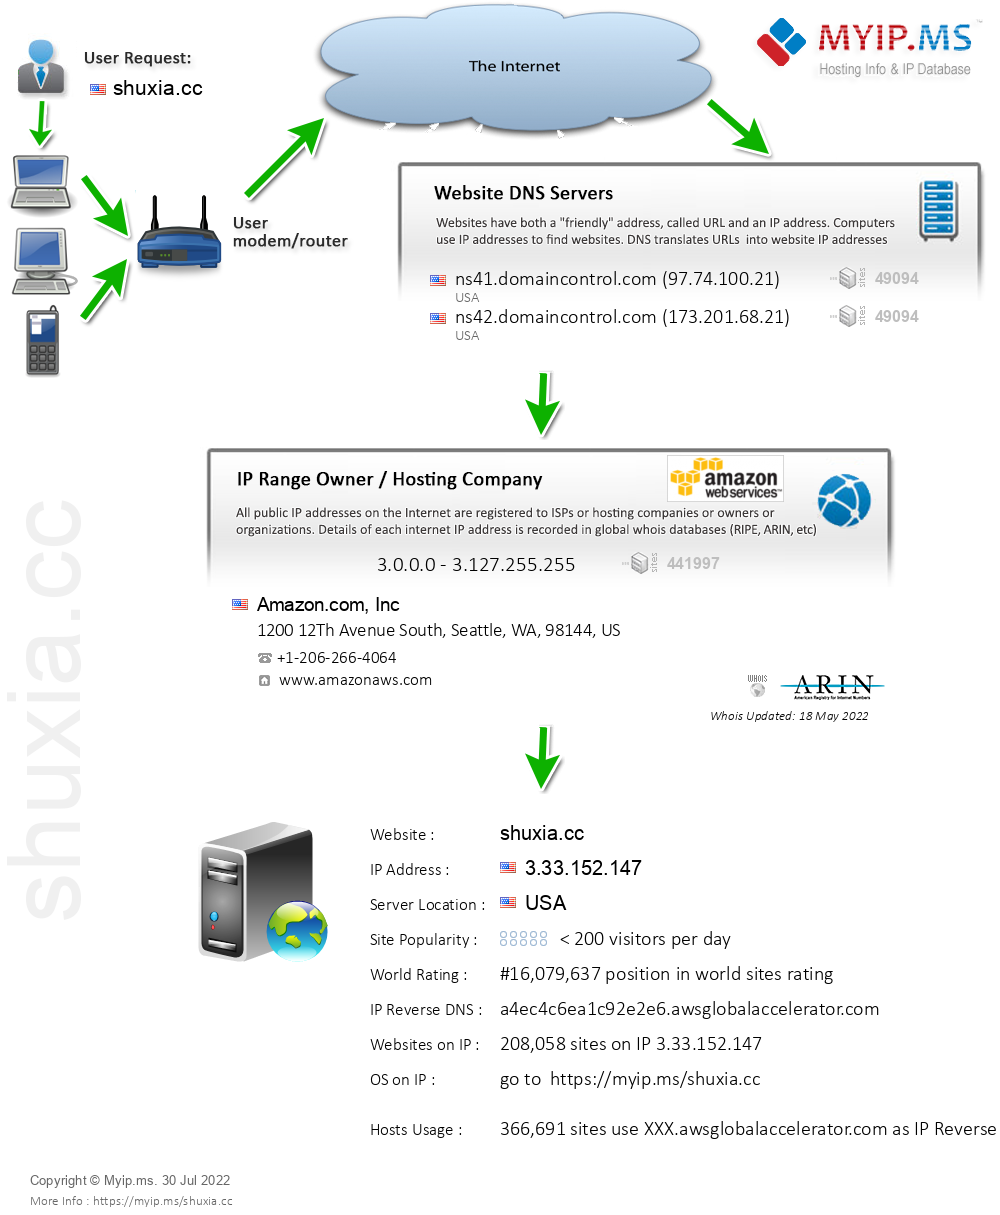 Shuxia.cc - Website Hosting Visual IP Diagram